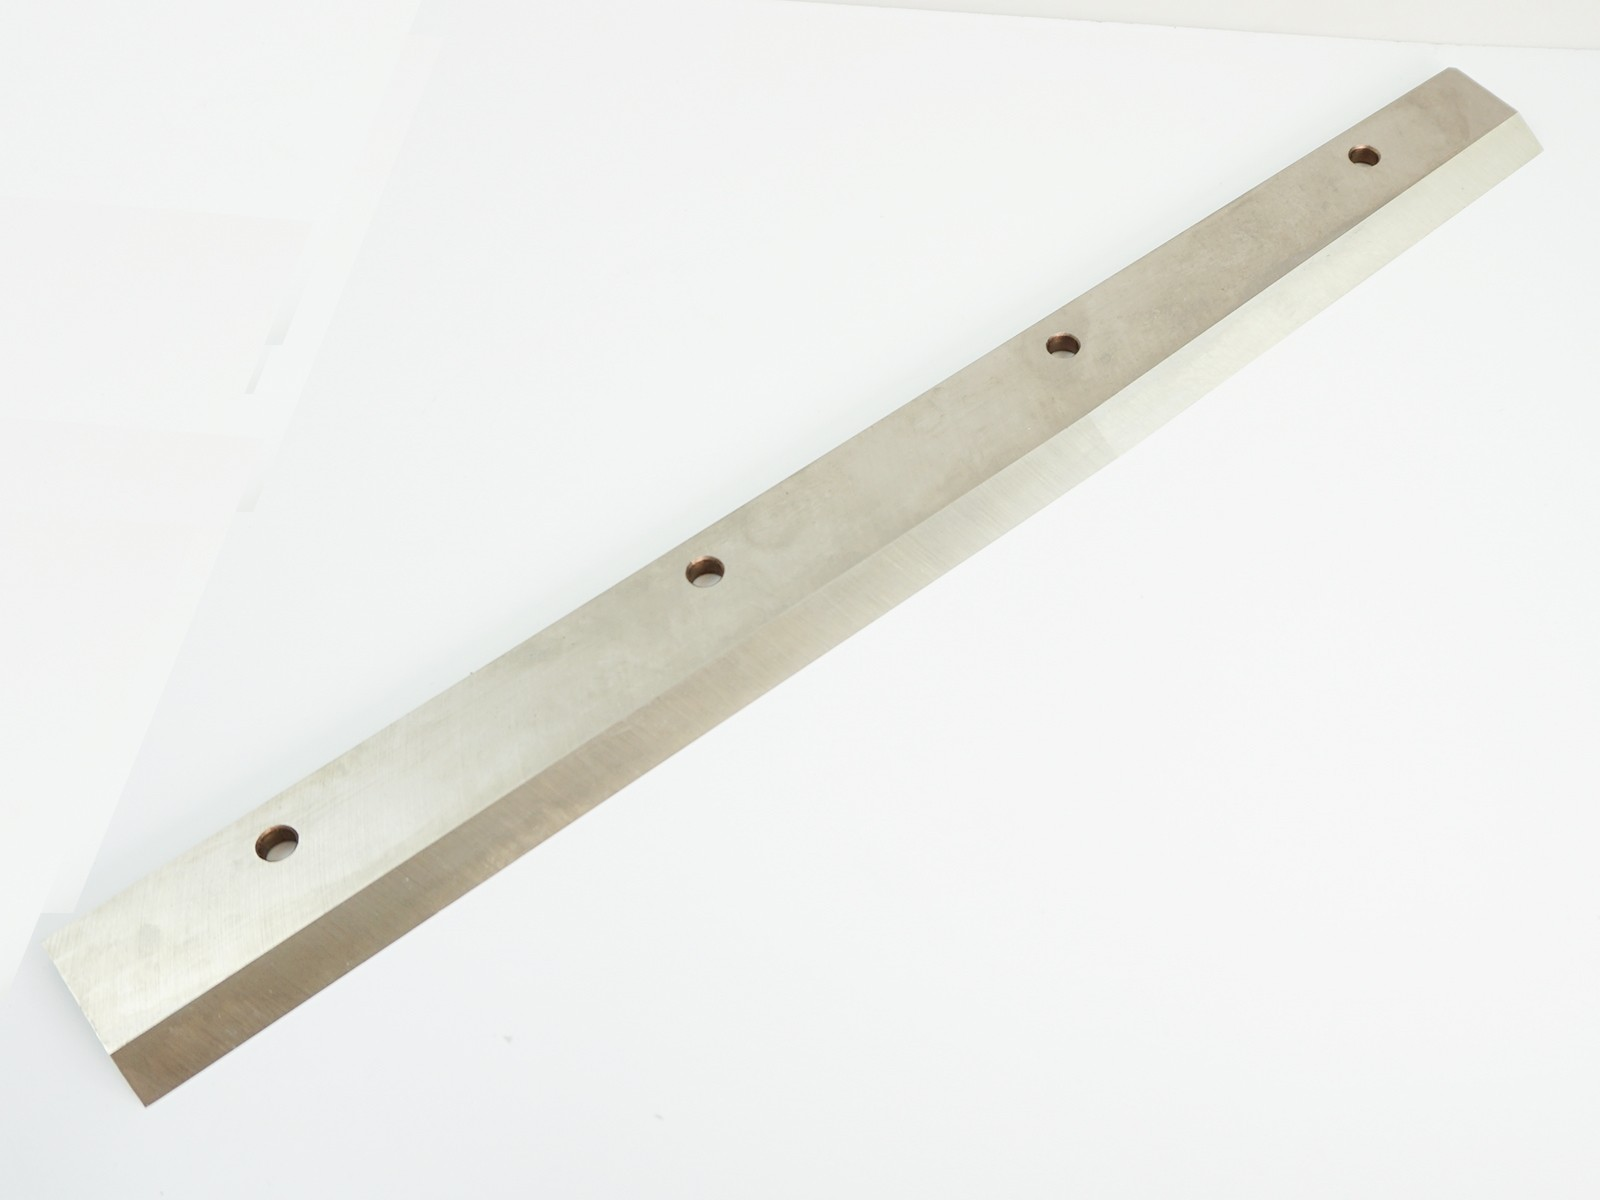 Blade, Upper Plastic for Modular Shear